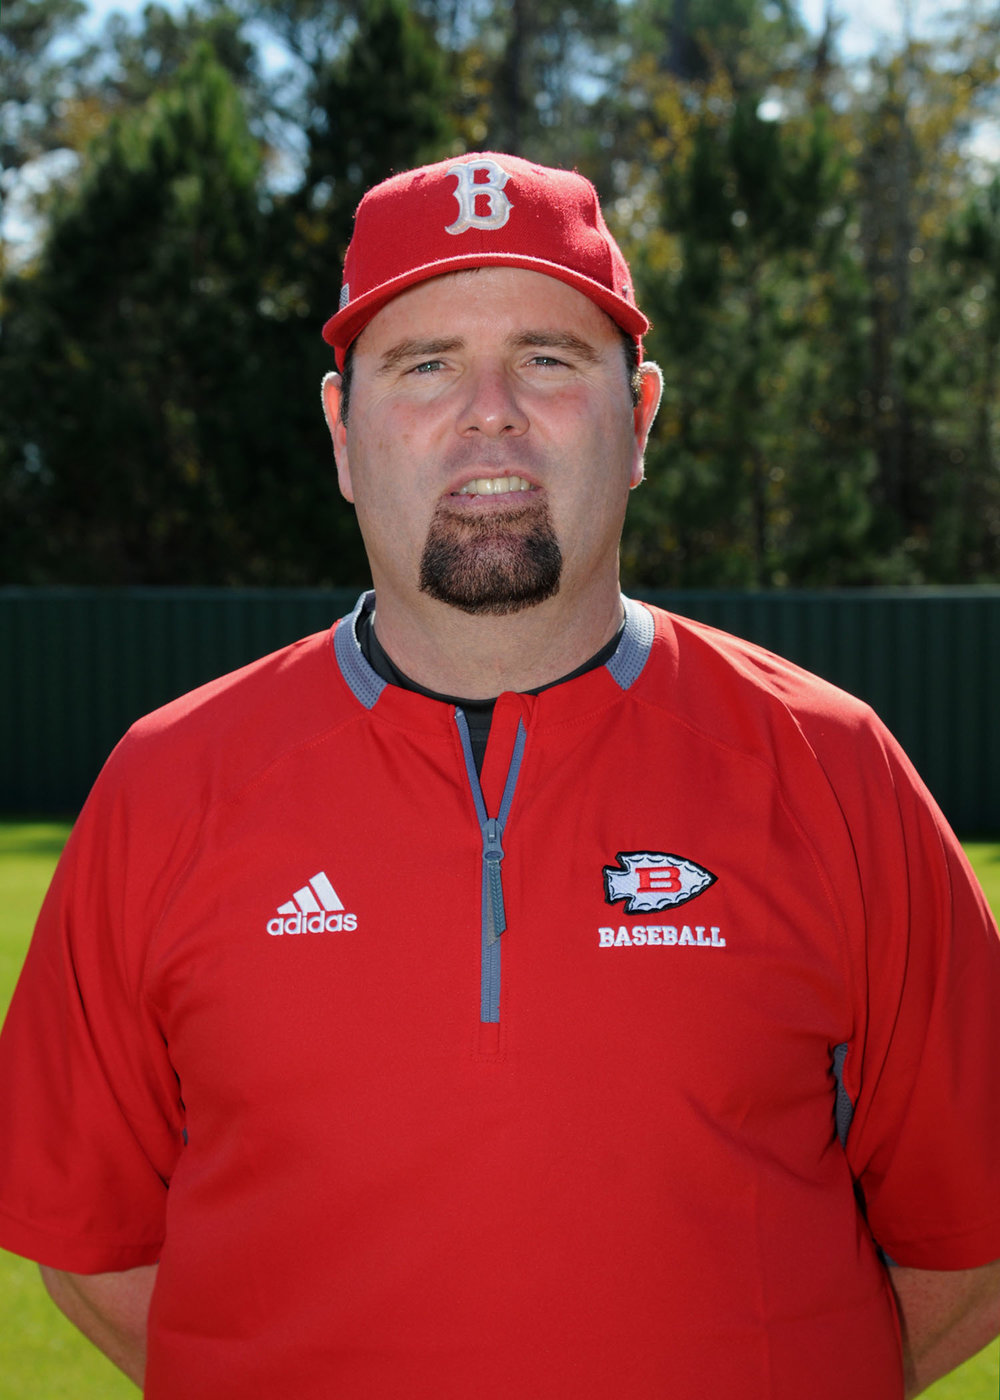 Eddie C. Lofton - Coaching History:       1997-1999        Head Baseball at Mendenhall H.S1999-2005        Head Baseball at Seminary H.S2005-2015        Head Baseball at Clinton High School2015-Present   Head Baseball at Biloxi High School                                               Education/Experience: BS in Teaching Coaching and Education at Mississippi State UniversityMajor: Kinesiology               Minor: General SciencesMS in Interscholastic Athletic Administration at University of Southern MississippiFamily: Wife:  Stacey M. LoftonDaughters:  Mary Elizabeth (18),  Taylor Ann (15),  Avery Carroll (10)Son:  Connor Cotton  (12)Outlook for 2018: This upcoming season (2018) brings feelings of excitement.  I am curious about just how far this group can take us.  I know the talent is there and the desire seems to be higher than ever.  I really believe that this teams chemistry and their talent could go a long way.  We have 6 seniors and they have done a great job leading this group of guys on and off the field.  We have some experience returning to the field, but will be fairly young as far as depth goes, especially on the mound.  I really feel good about our pitching staff and the diversity we have with it and how it matches up with our opponents.  I really believe that if we hit the ball like we should we can have a lot of success in this 2018 season.  I also believe this may be one of the most talented defensive teams Biloxi has had in years.